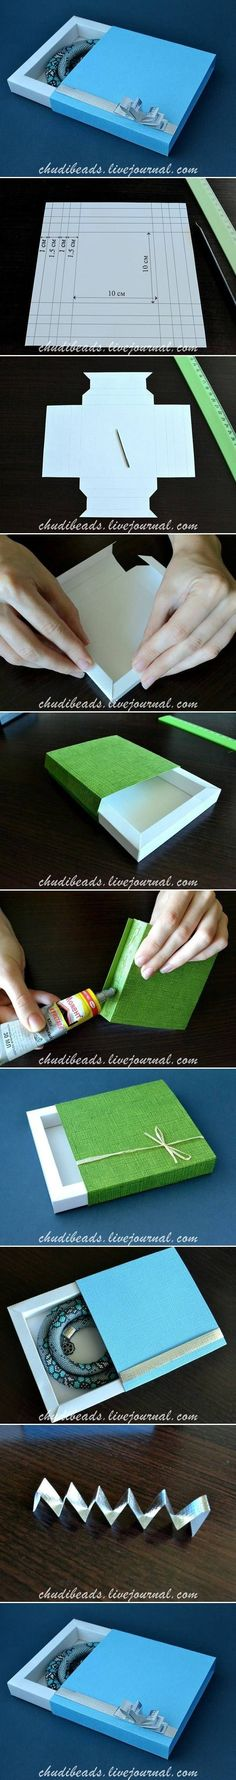 DIY-Square-Gift-Box.jpg (604×4557)